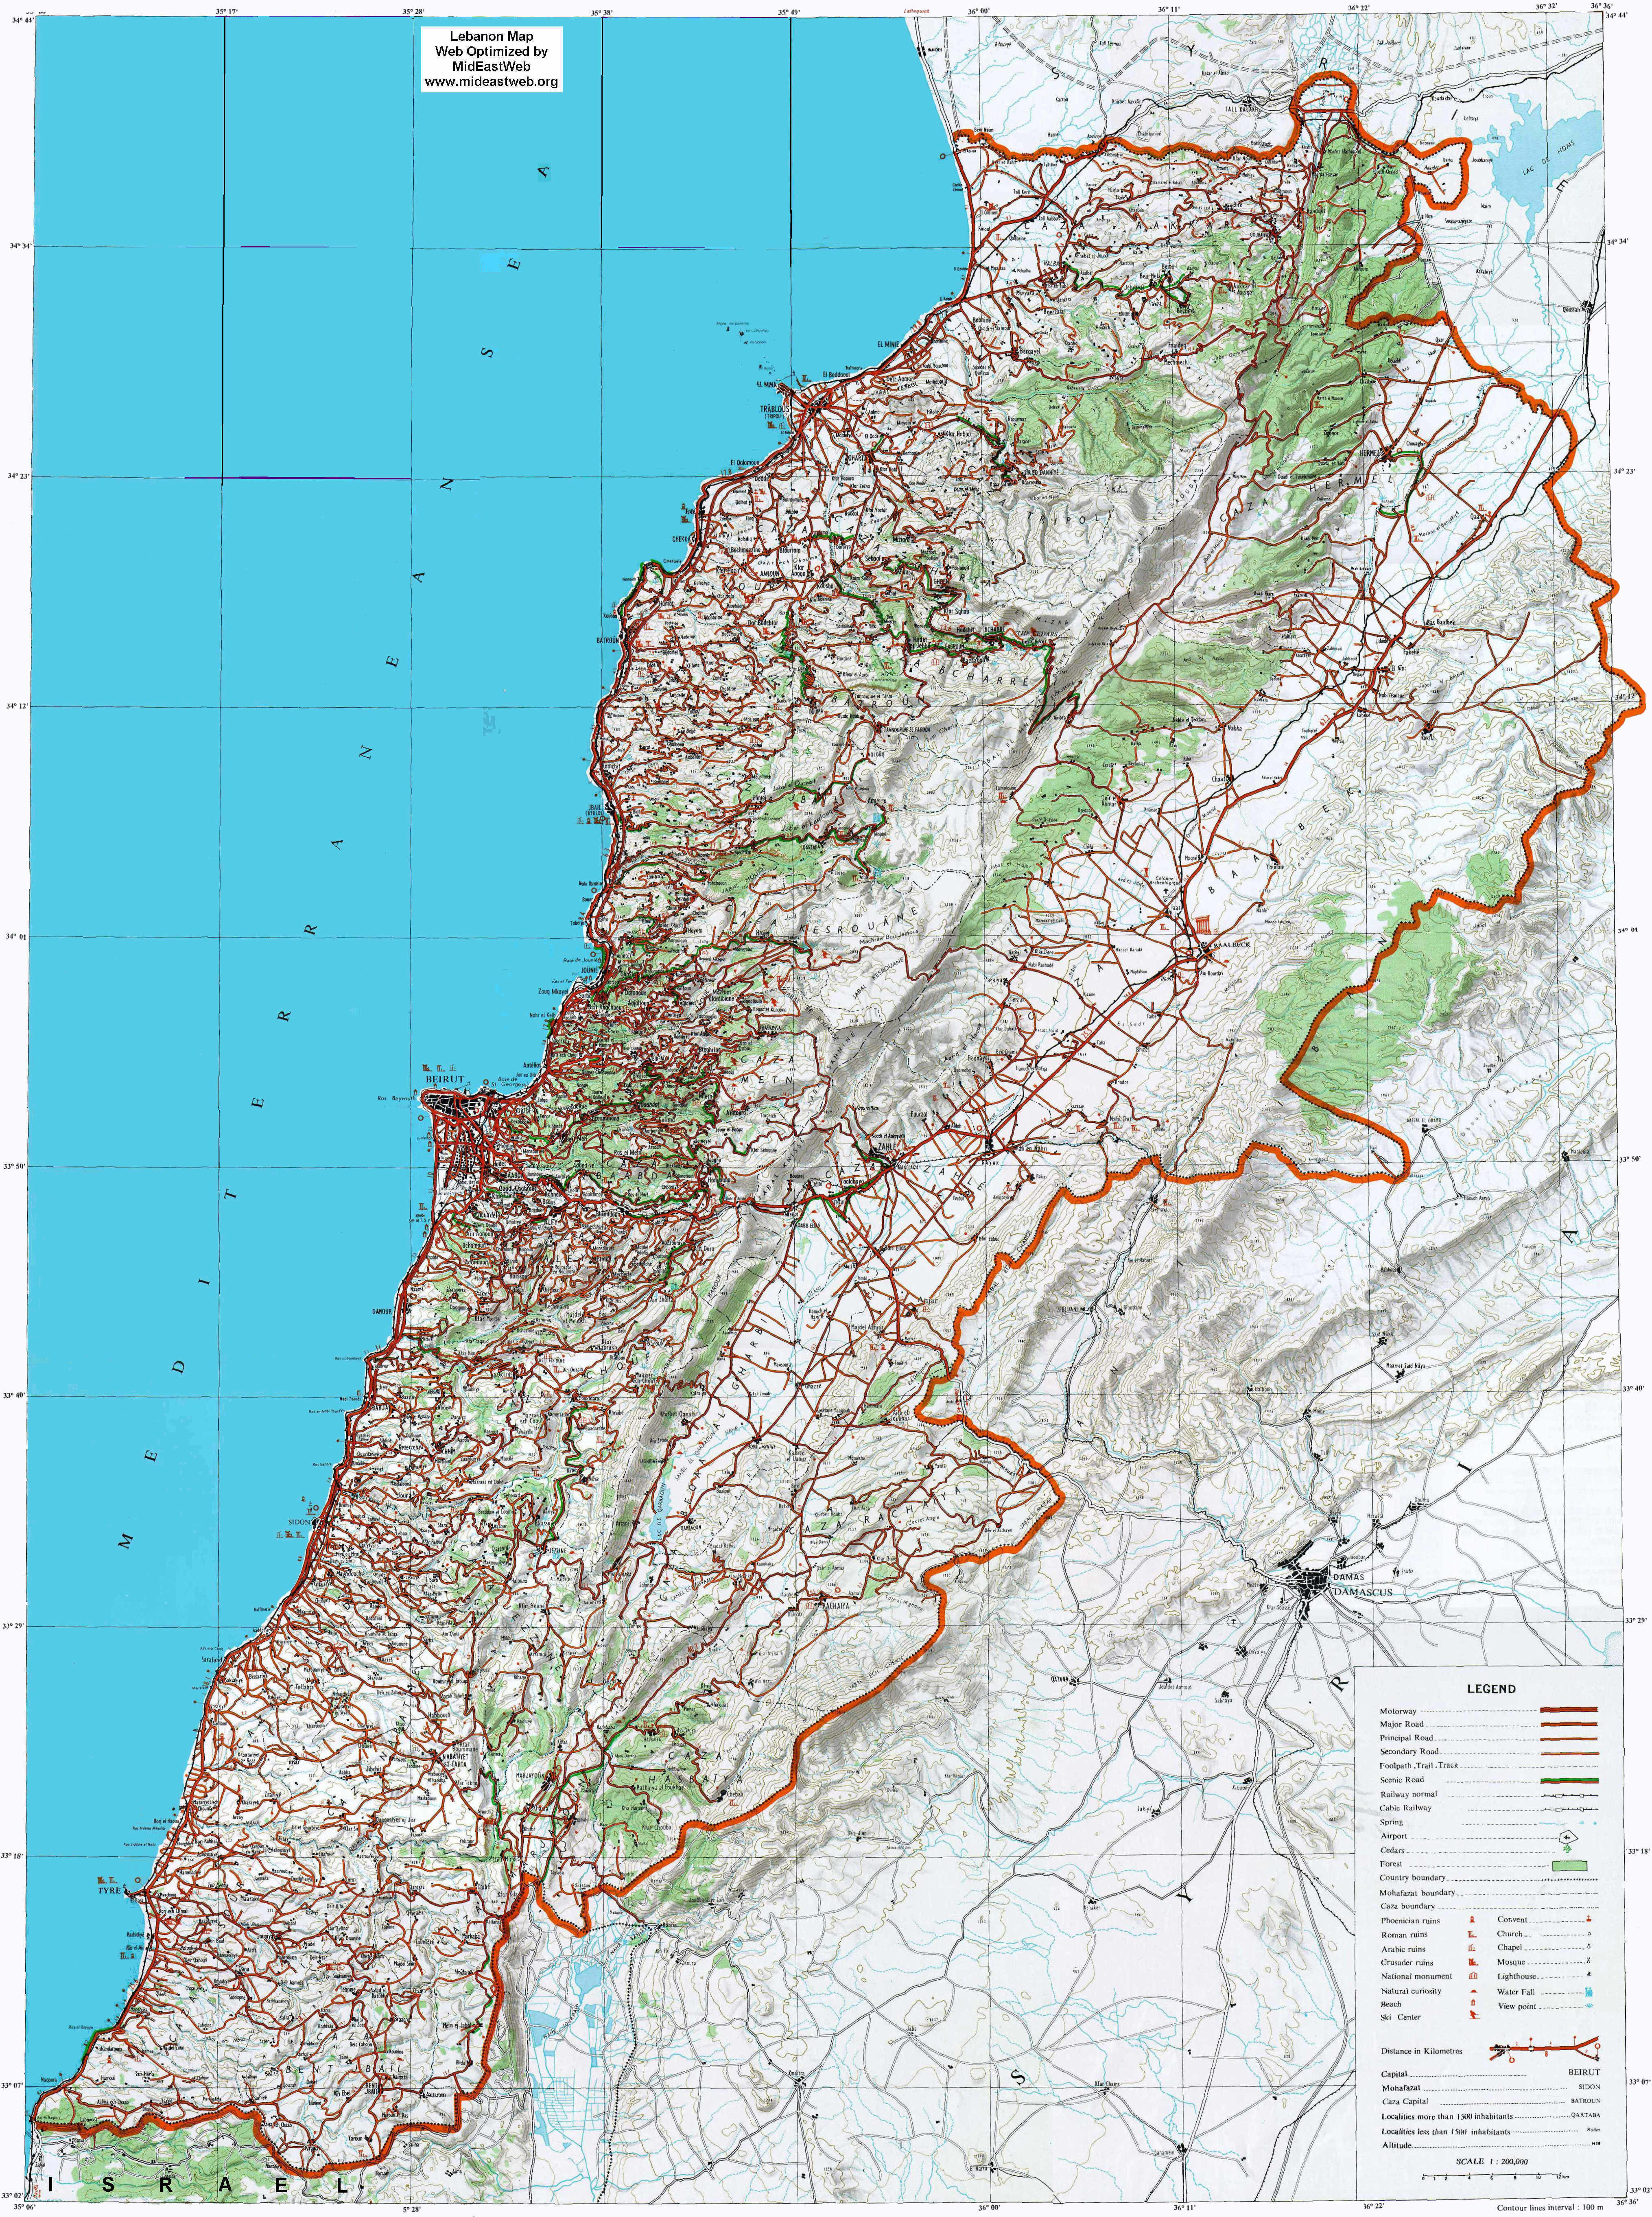 Lebanon Map- Detailed, Optimized